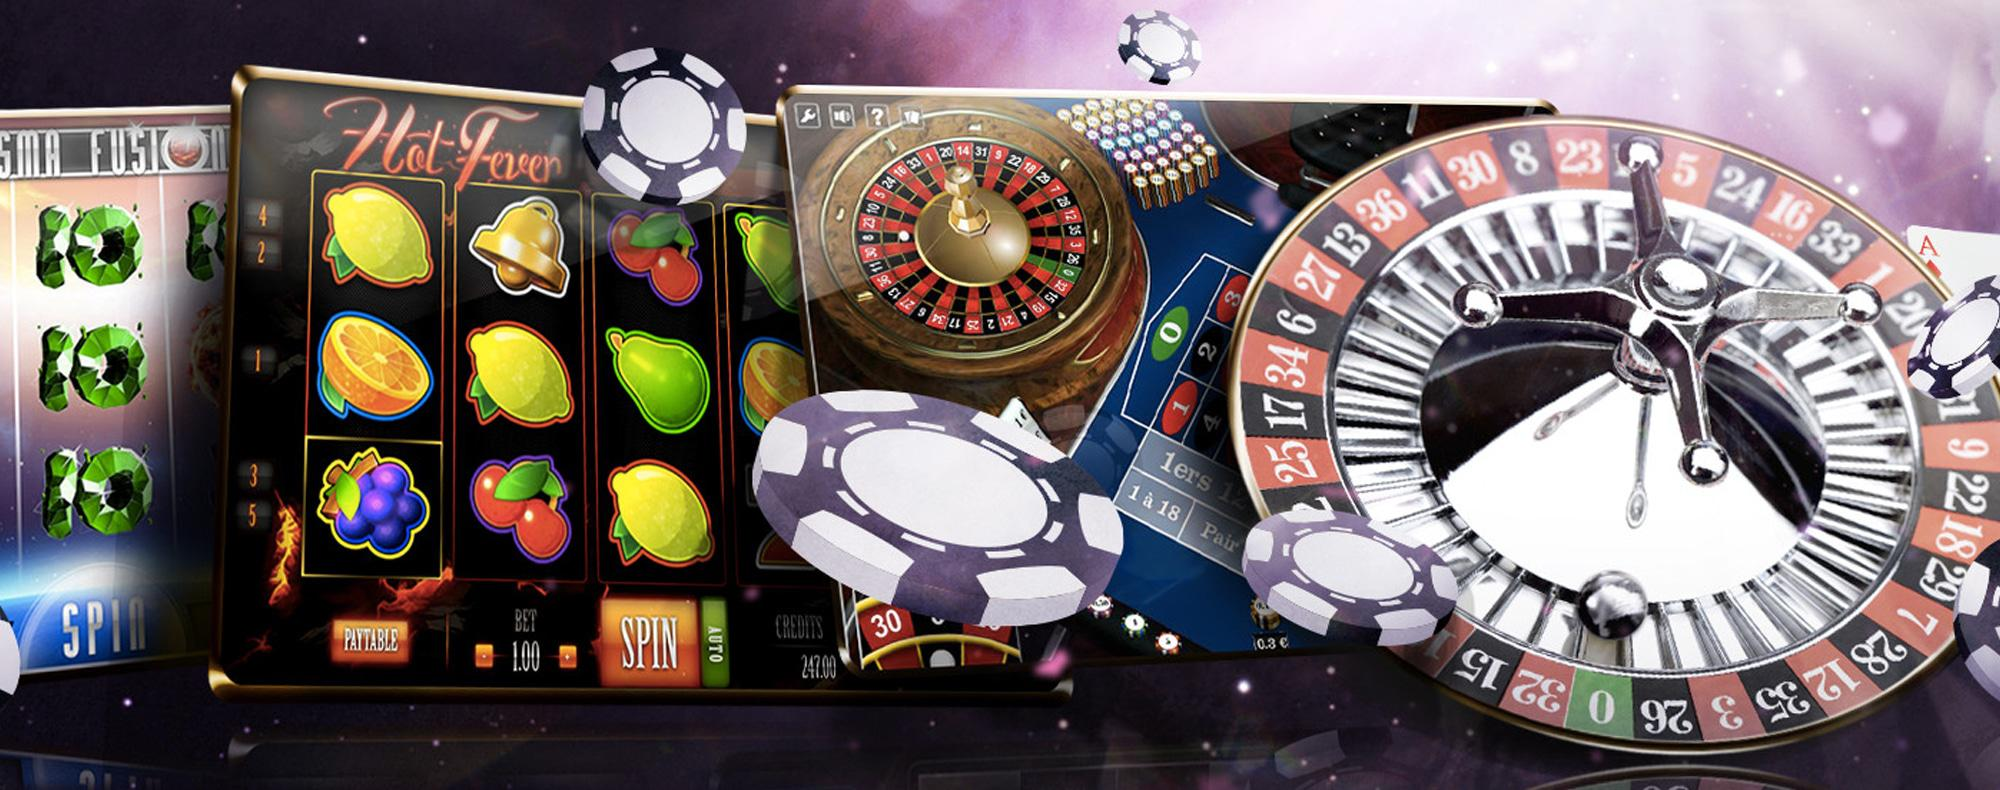 UK Casino Bonus 2019